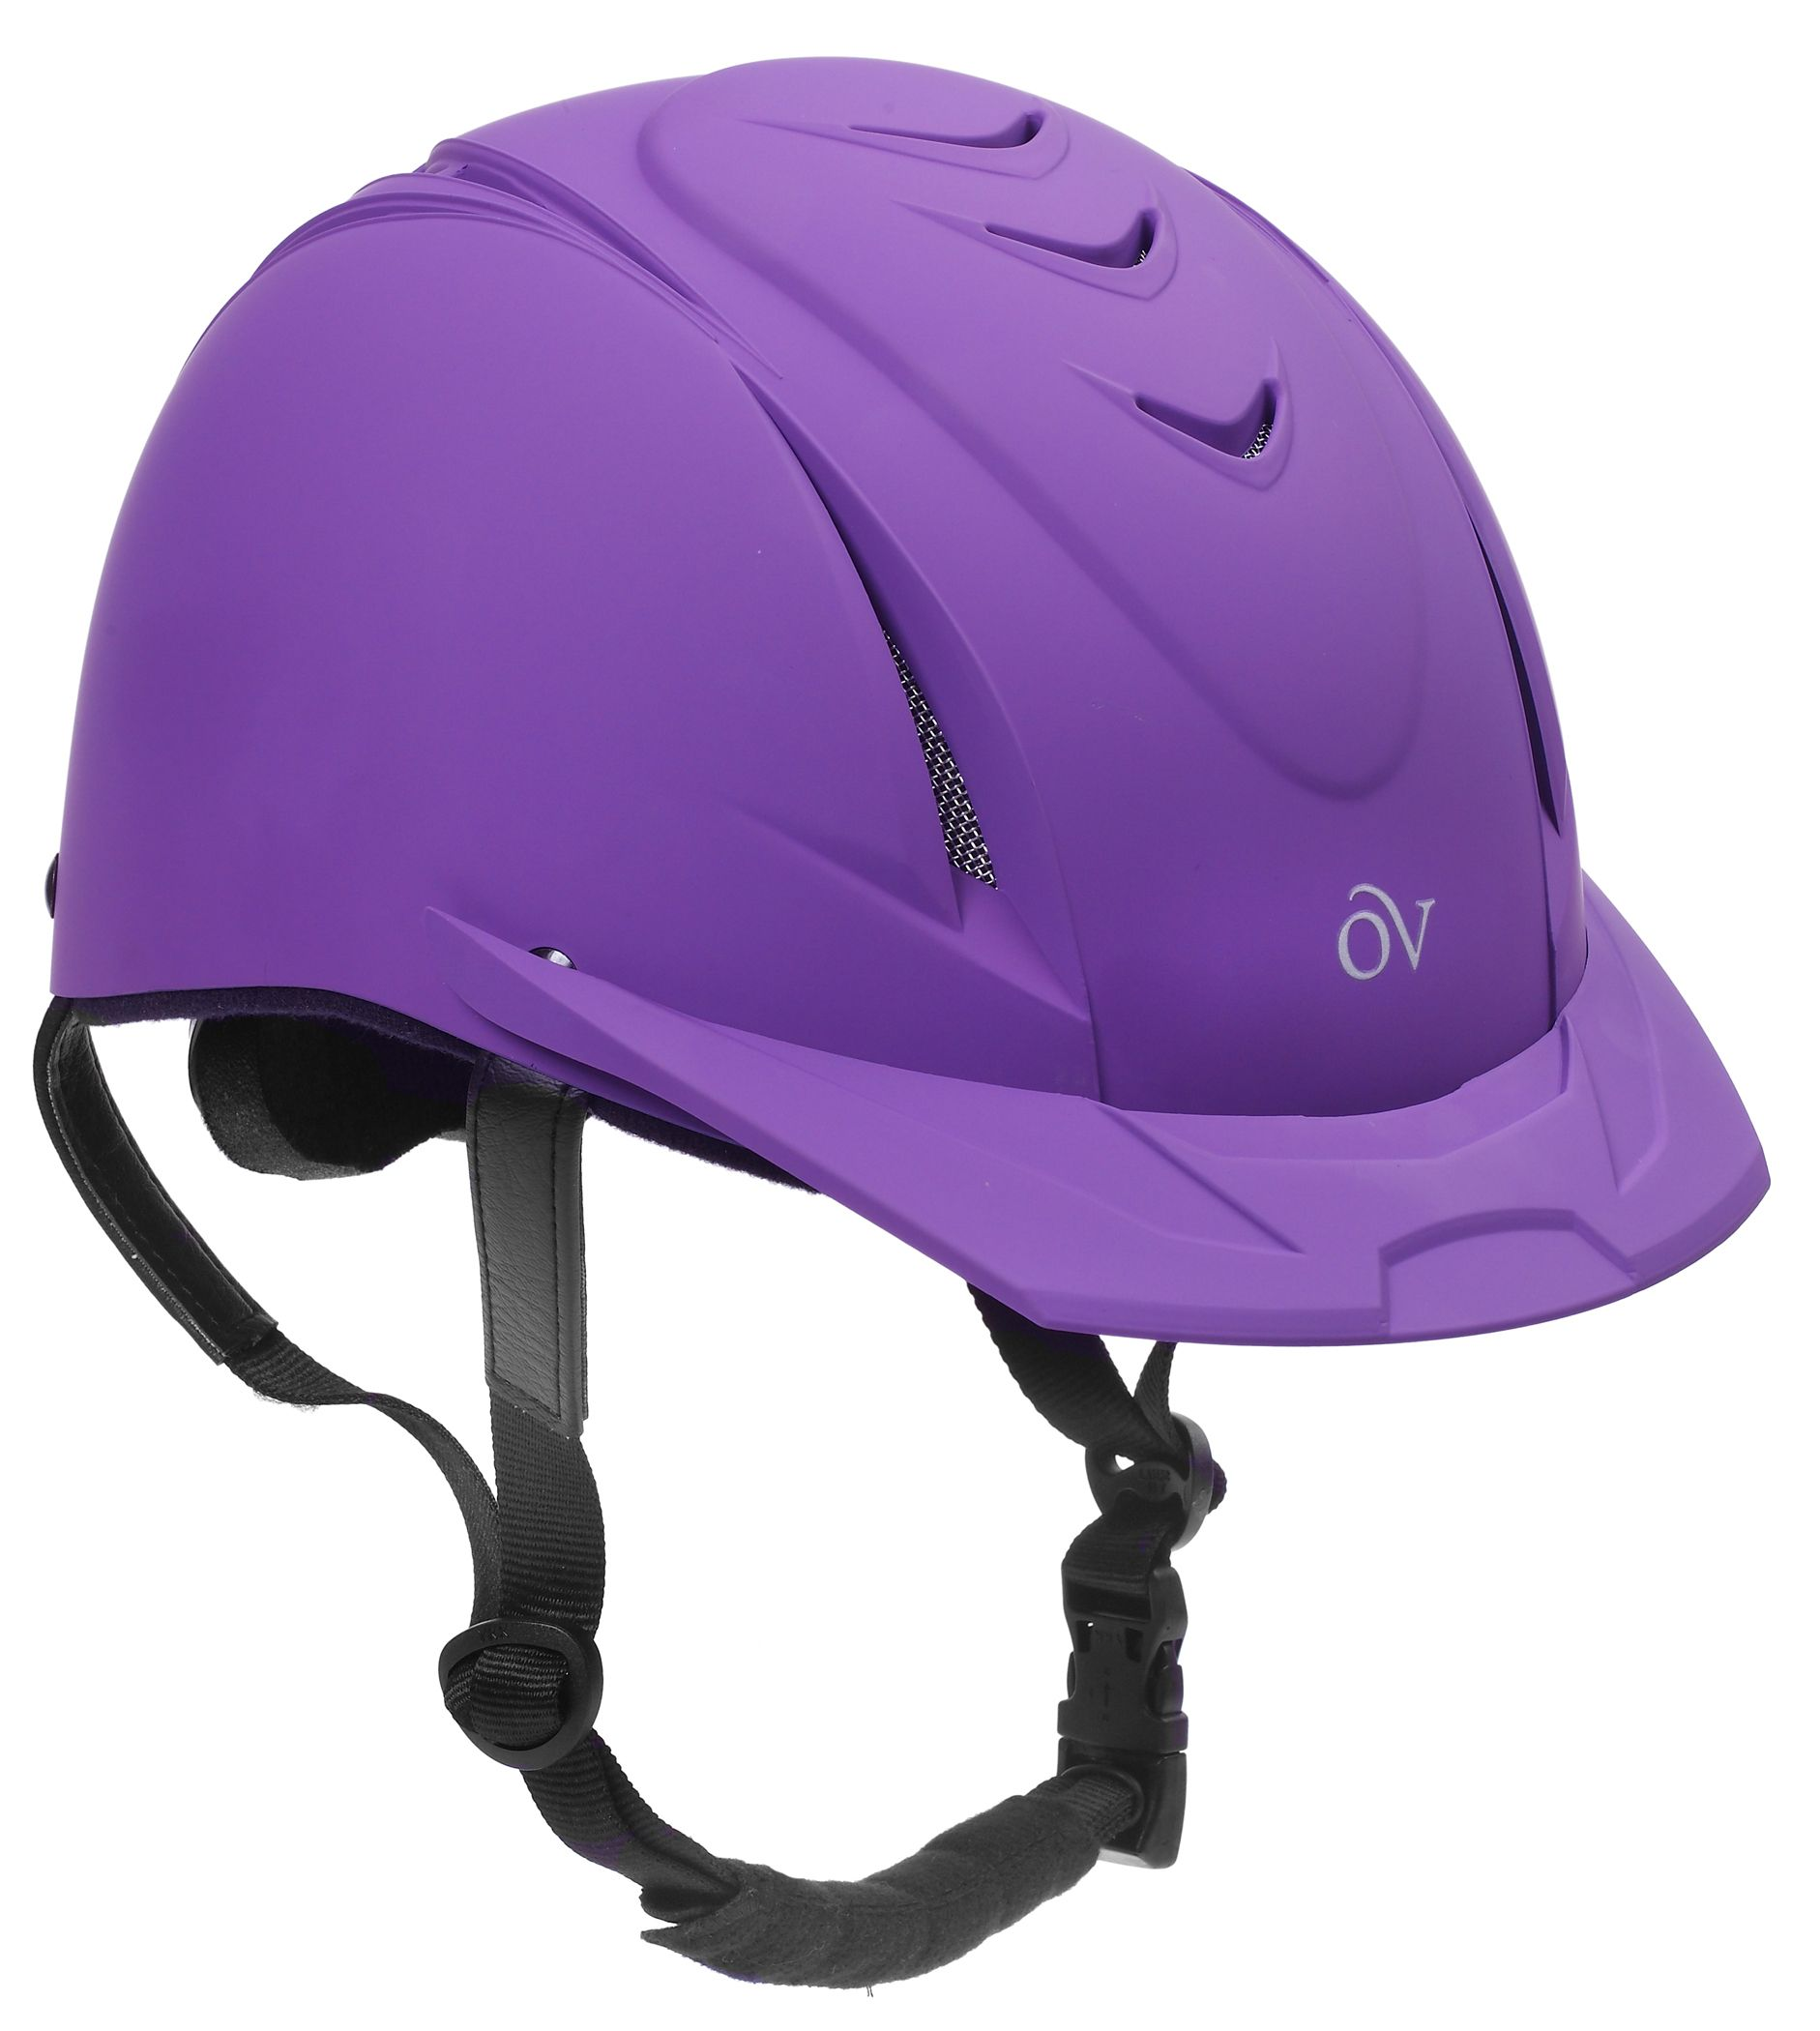 Horseback riding helmet (We also provide these for our